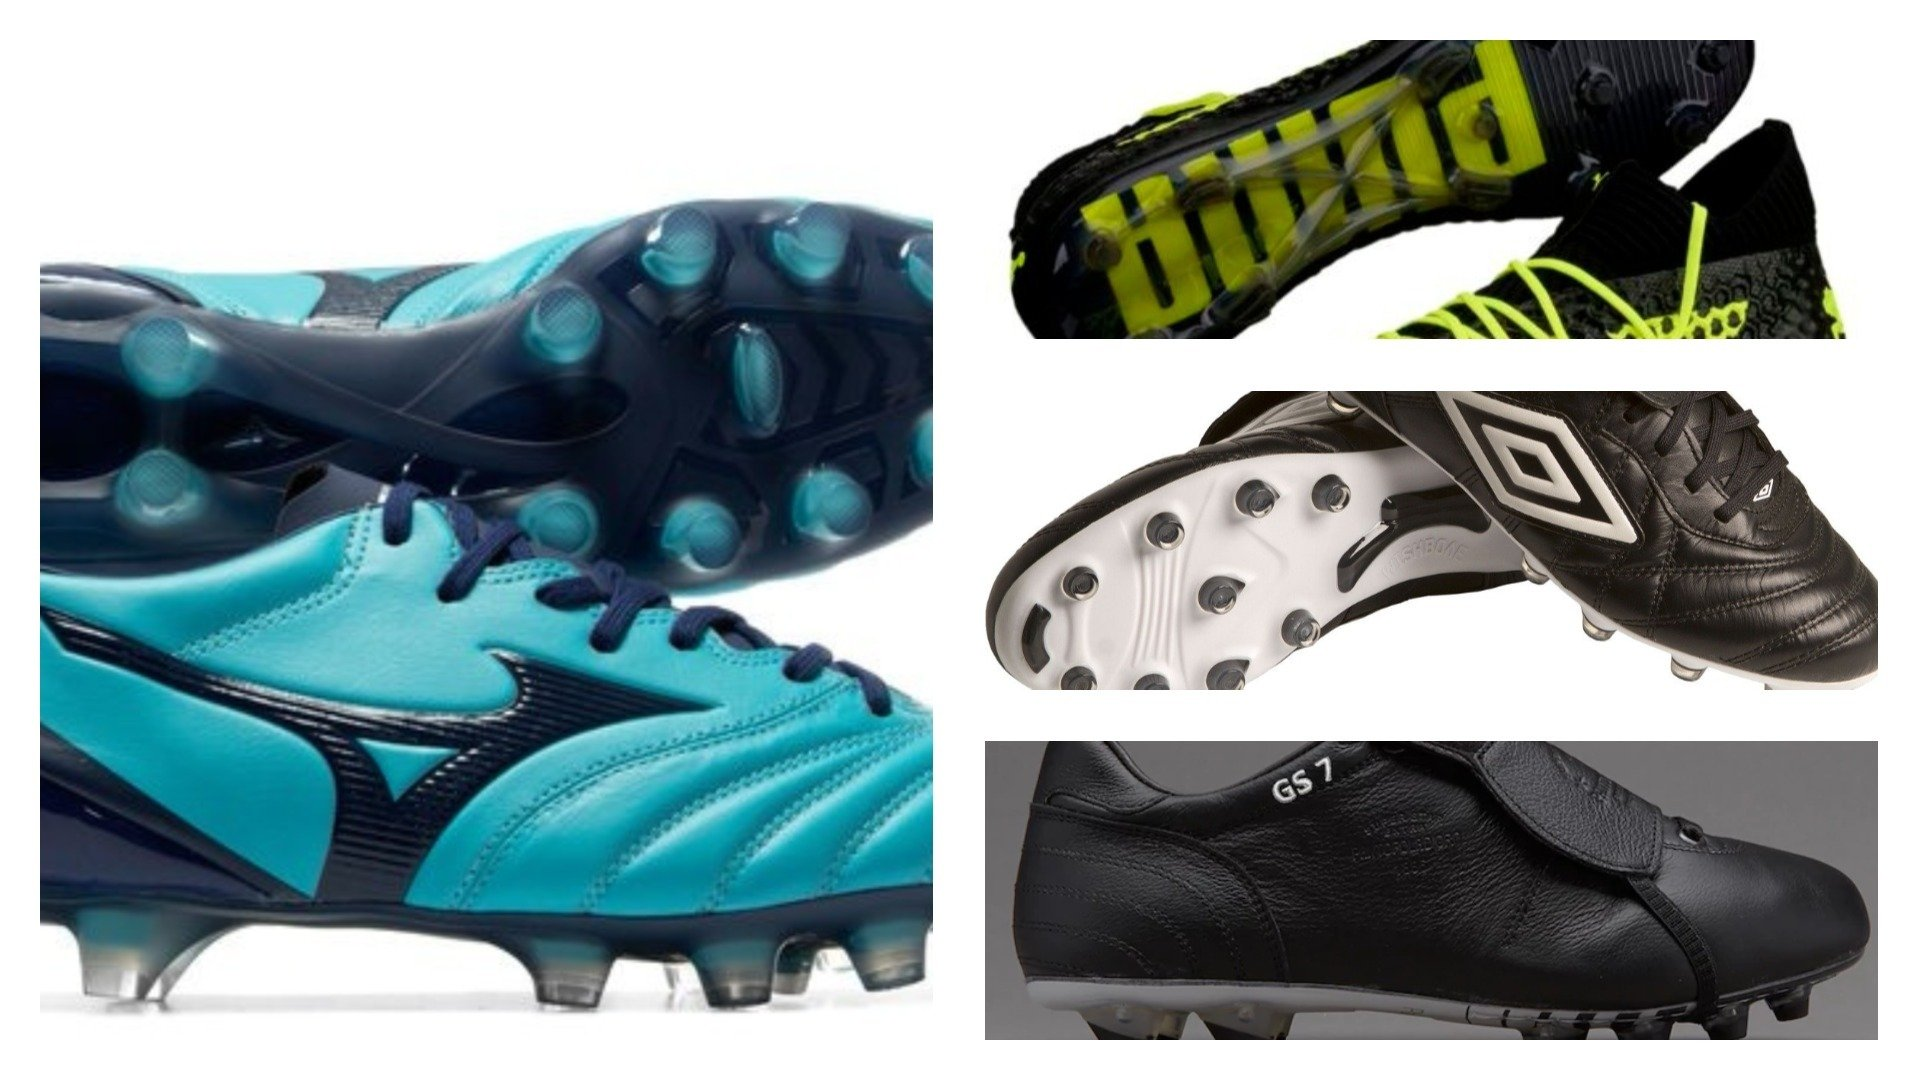 0d144fb4d9c41 Best football boots 2019: The best football boots, from £17 to £200 |  Expert Reviews